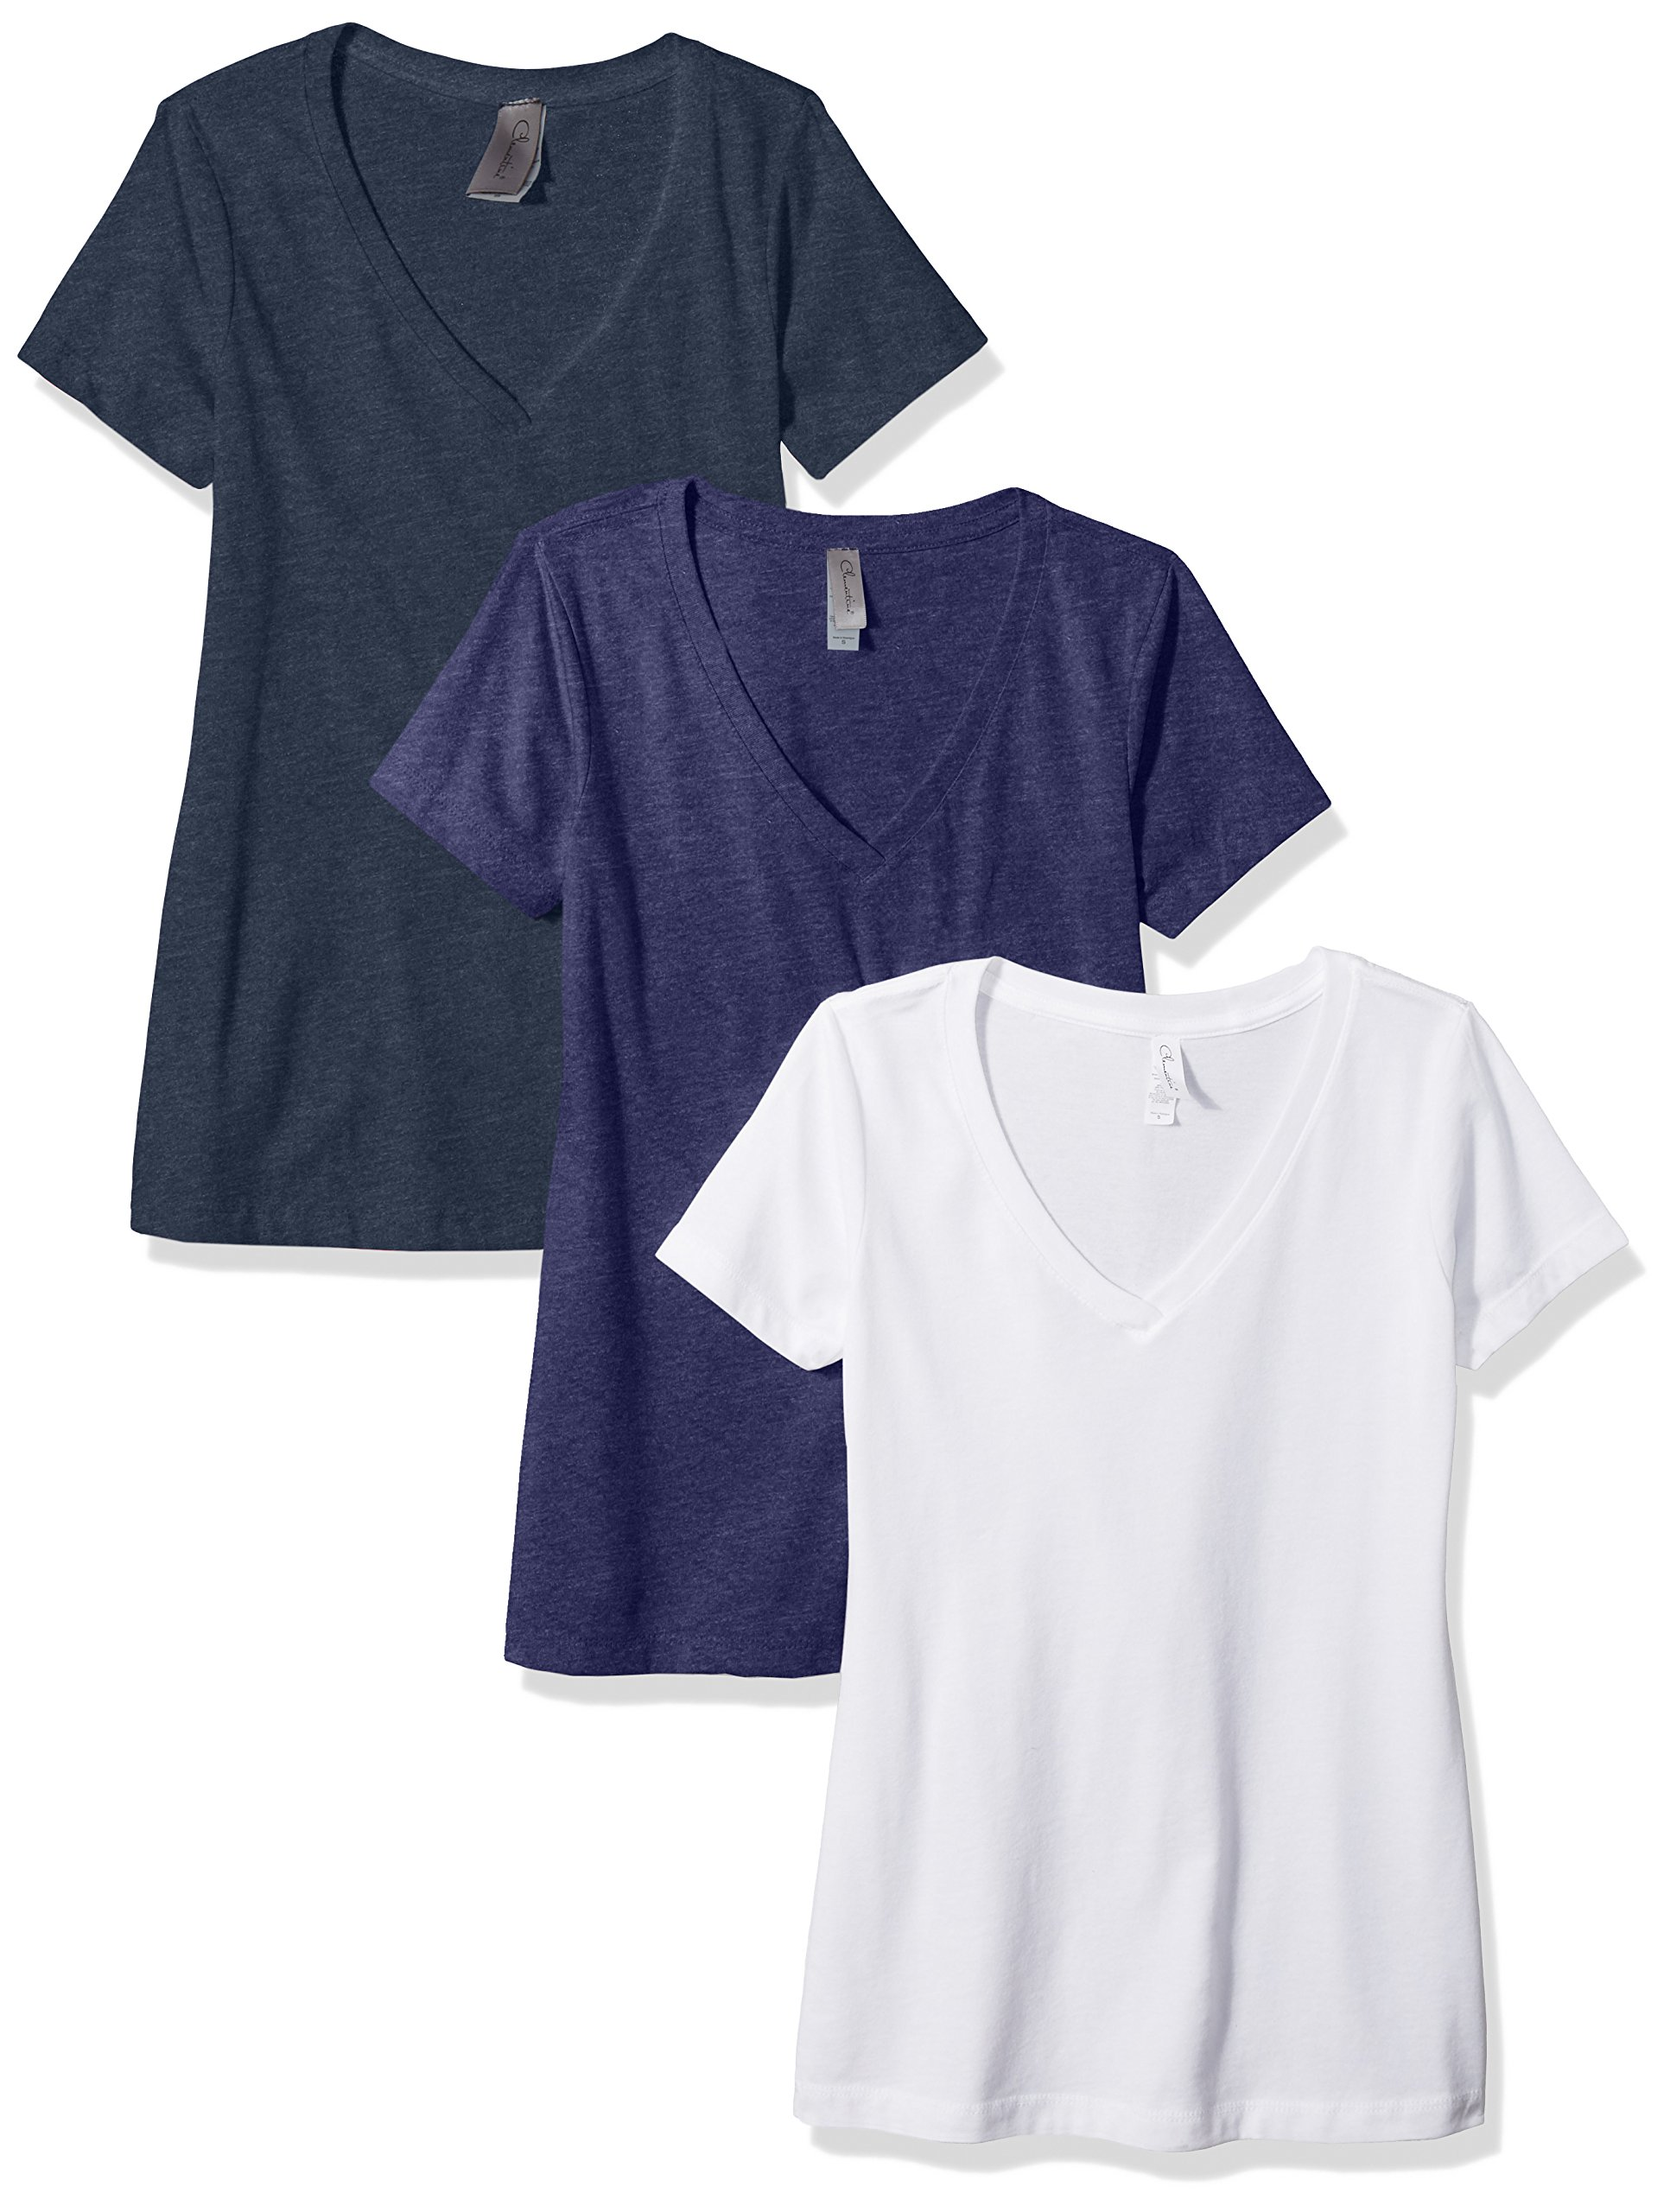 Clementine Apparel Women's Petite Plus Deep V Neck Tee (Pack of 3), White/Storm/Midnight Navy, XXL